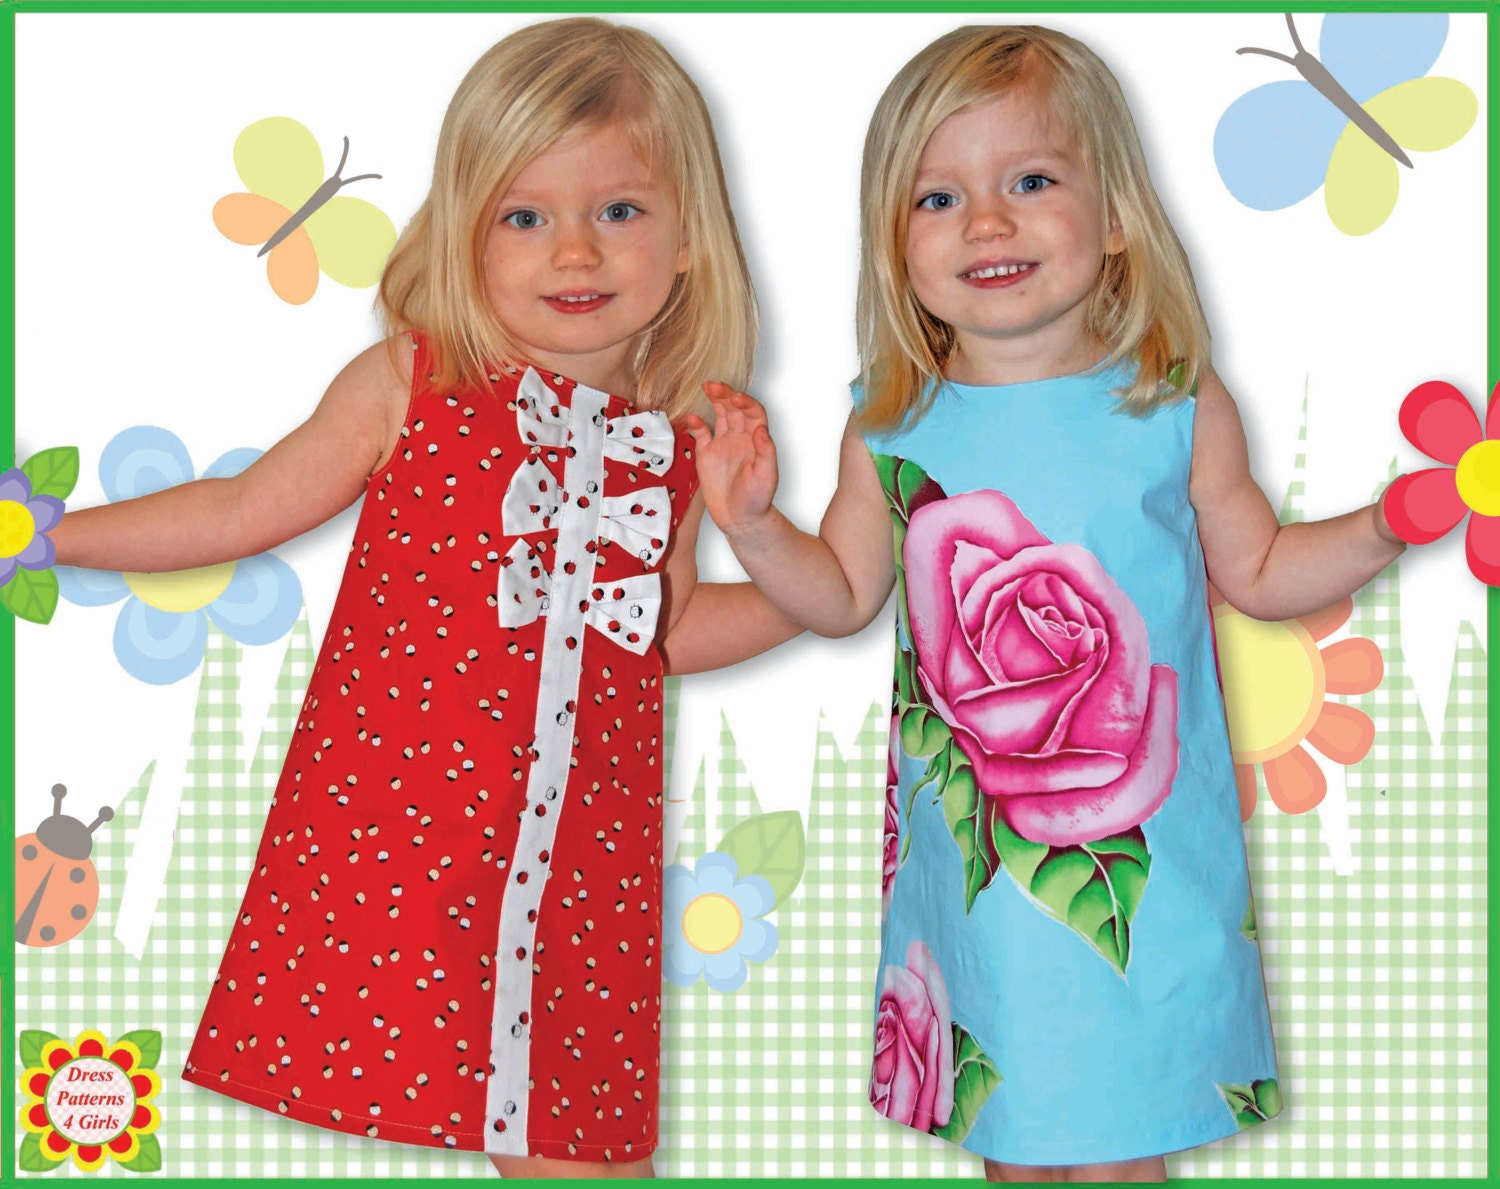 Adele girls dress patterns free mother daughter apron pattern this is a digital file jeuxipadfo Choice Image